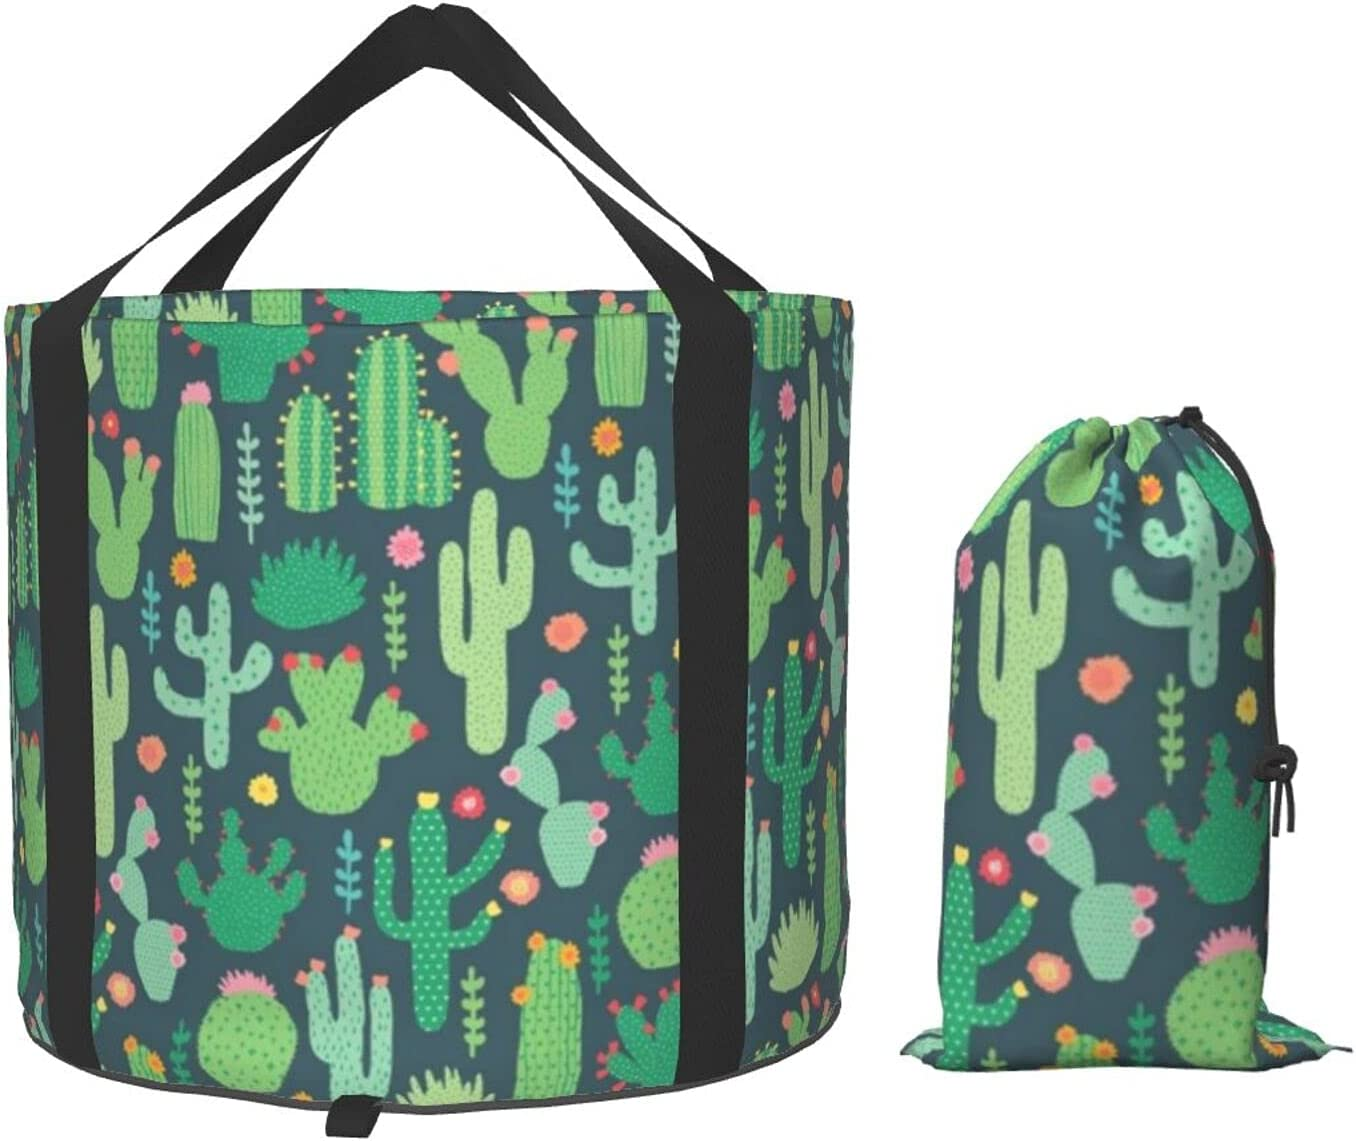 VVEGACE Cute Cactus Seamless Mu Outlet SALE Illustration Max 89% OFF Collapsible Bucket